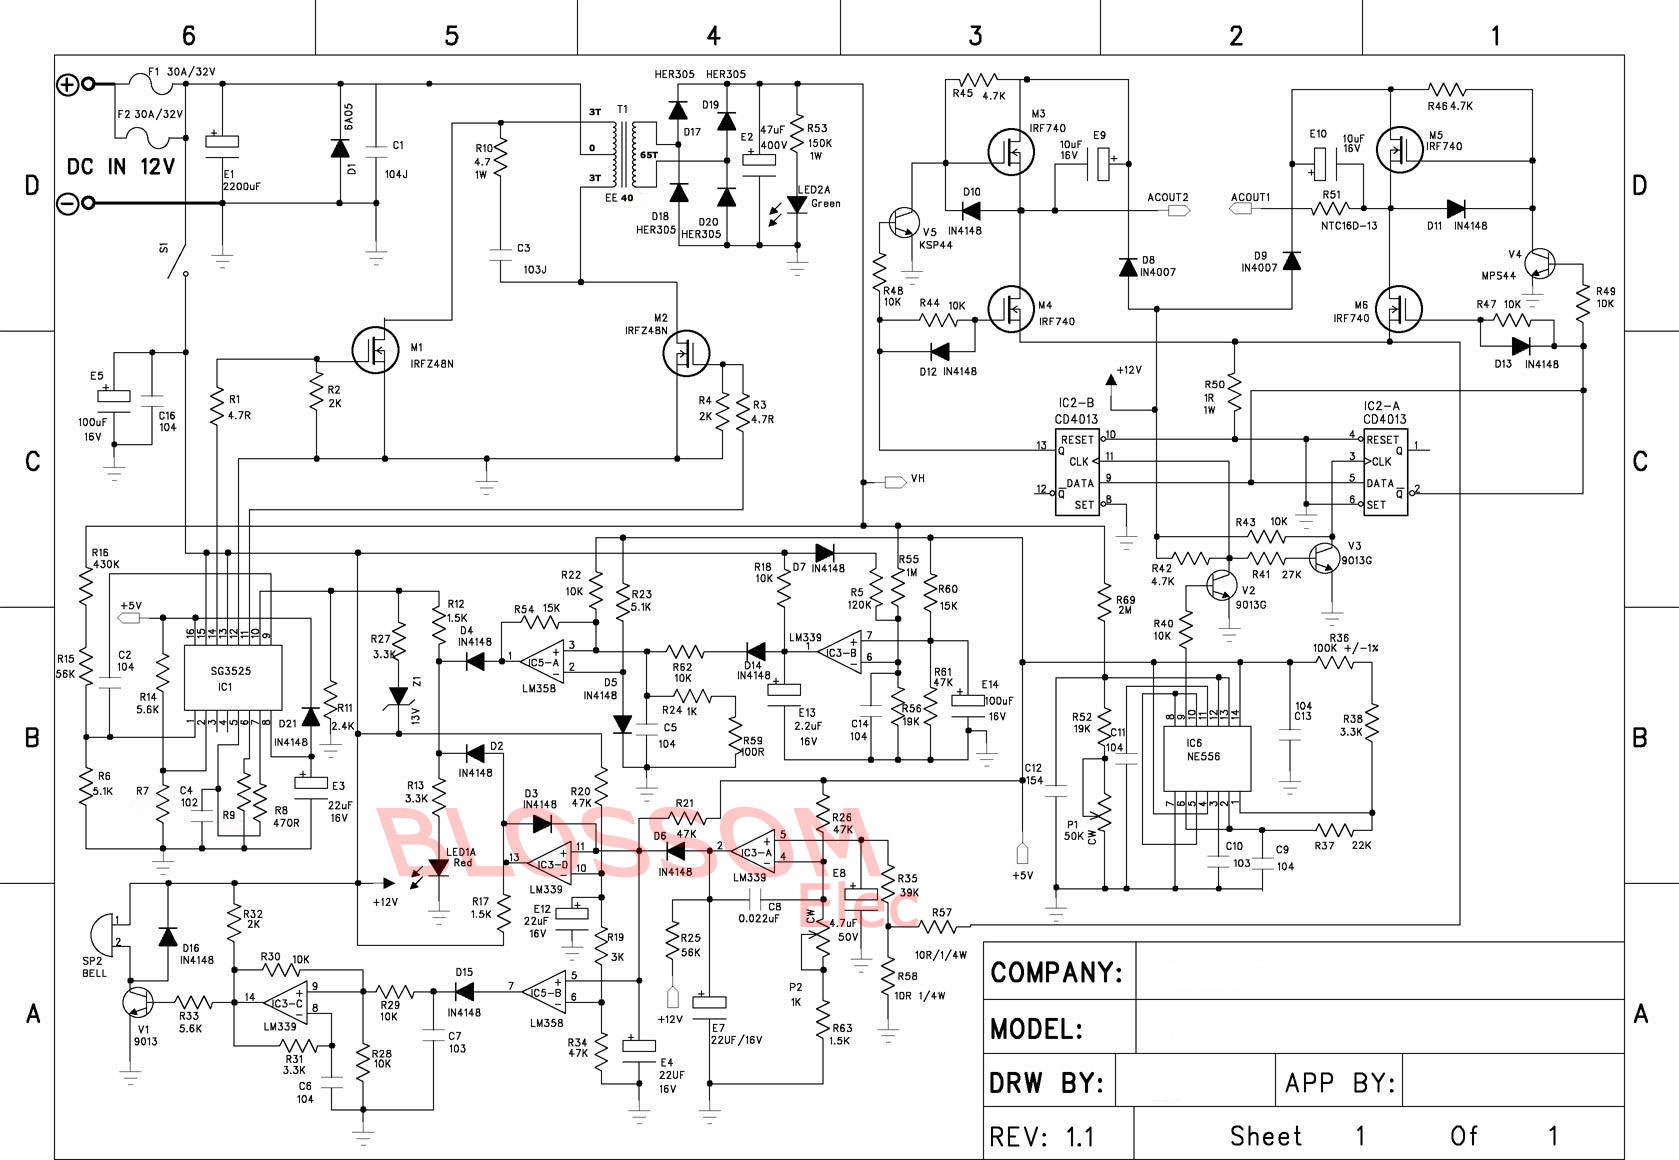 SOLVED] DC to AC inverter H-Bridge